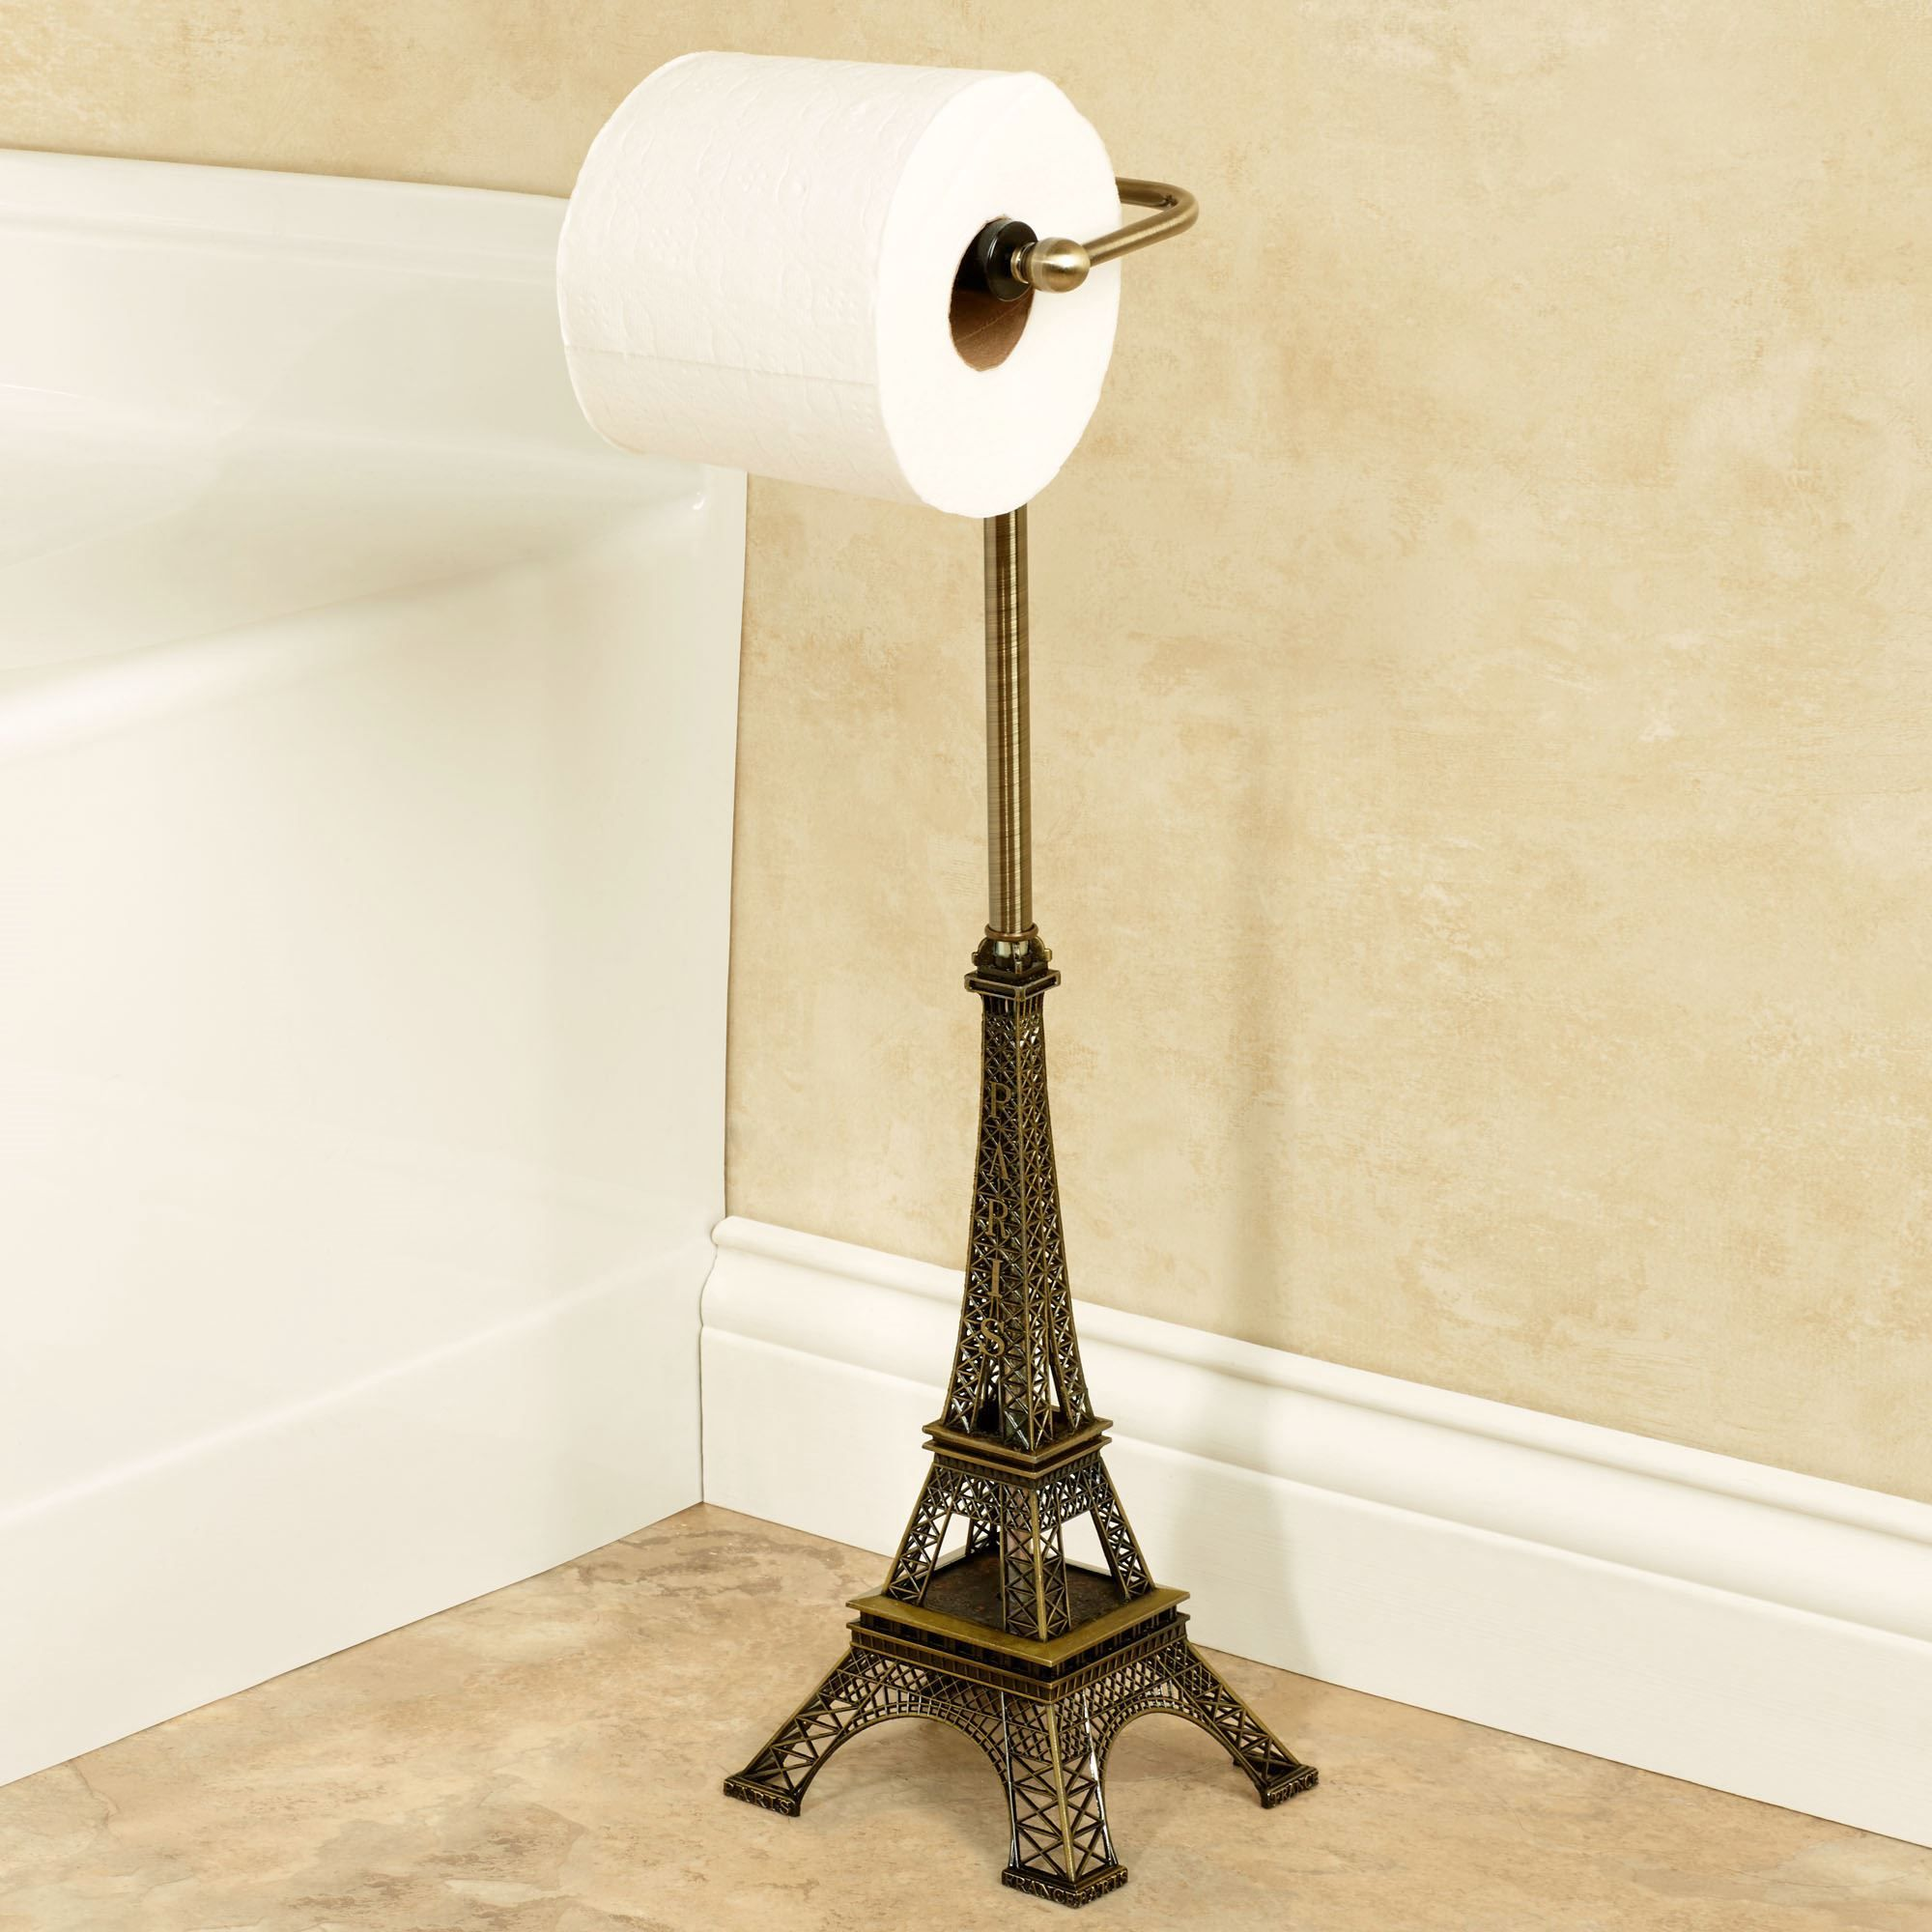 Gracious Cl In Paris Eiffel Tower Toilet Tissue Her Stand Ctional Bath Accents Touch